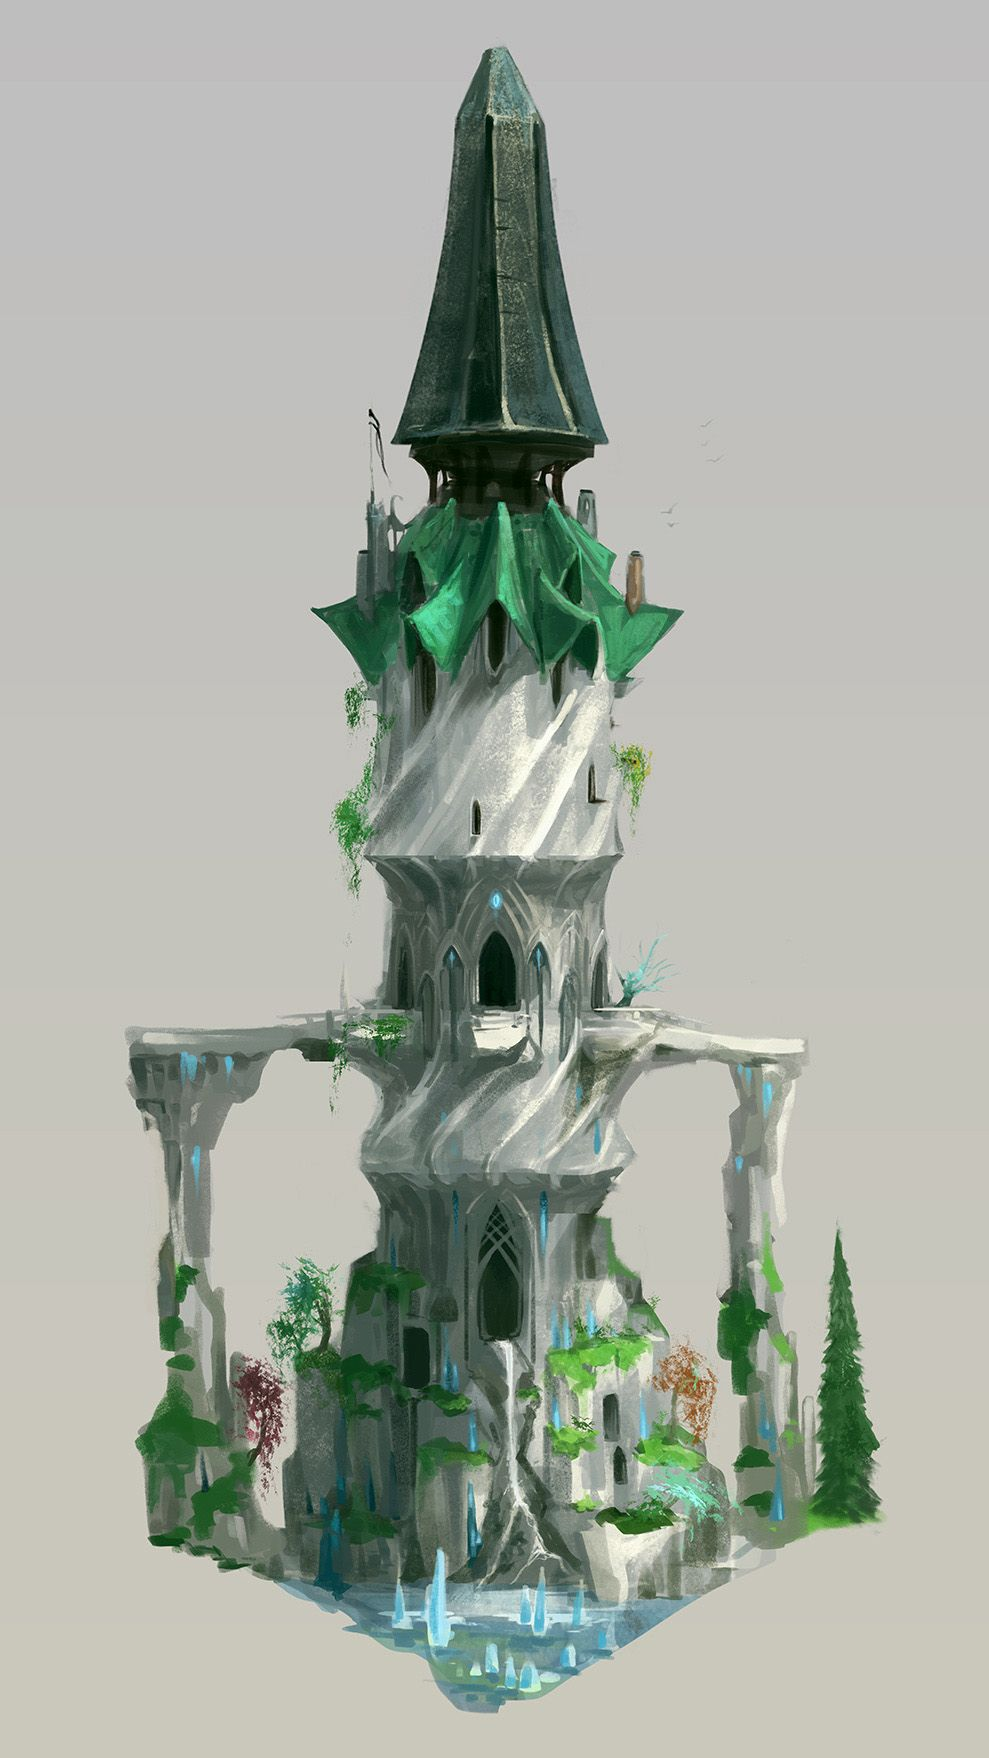 The Elf City and the Tower of Voices